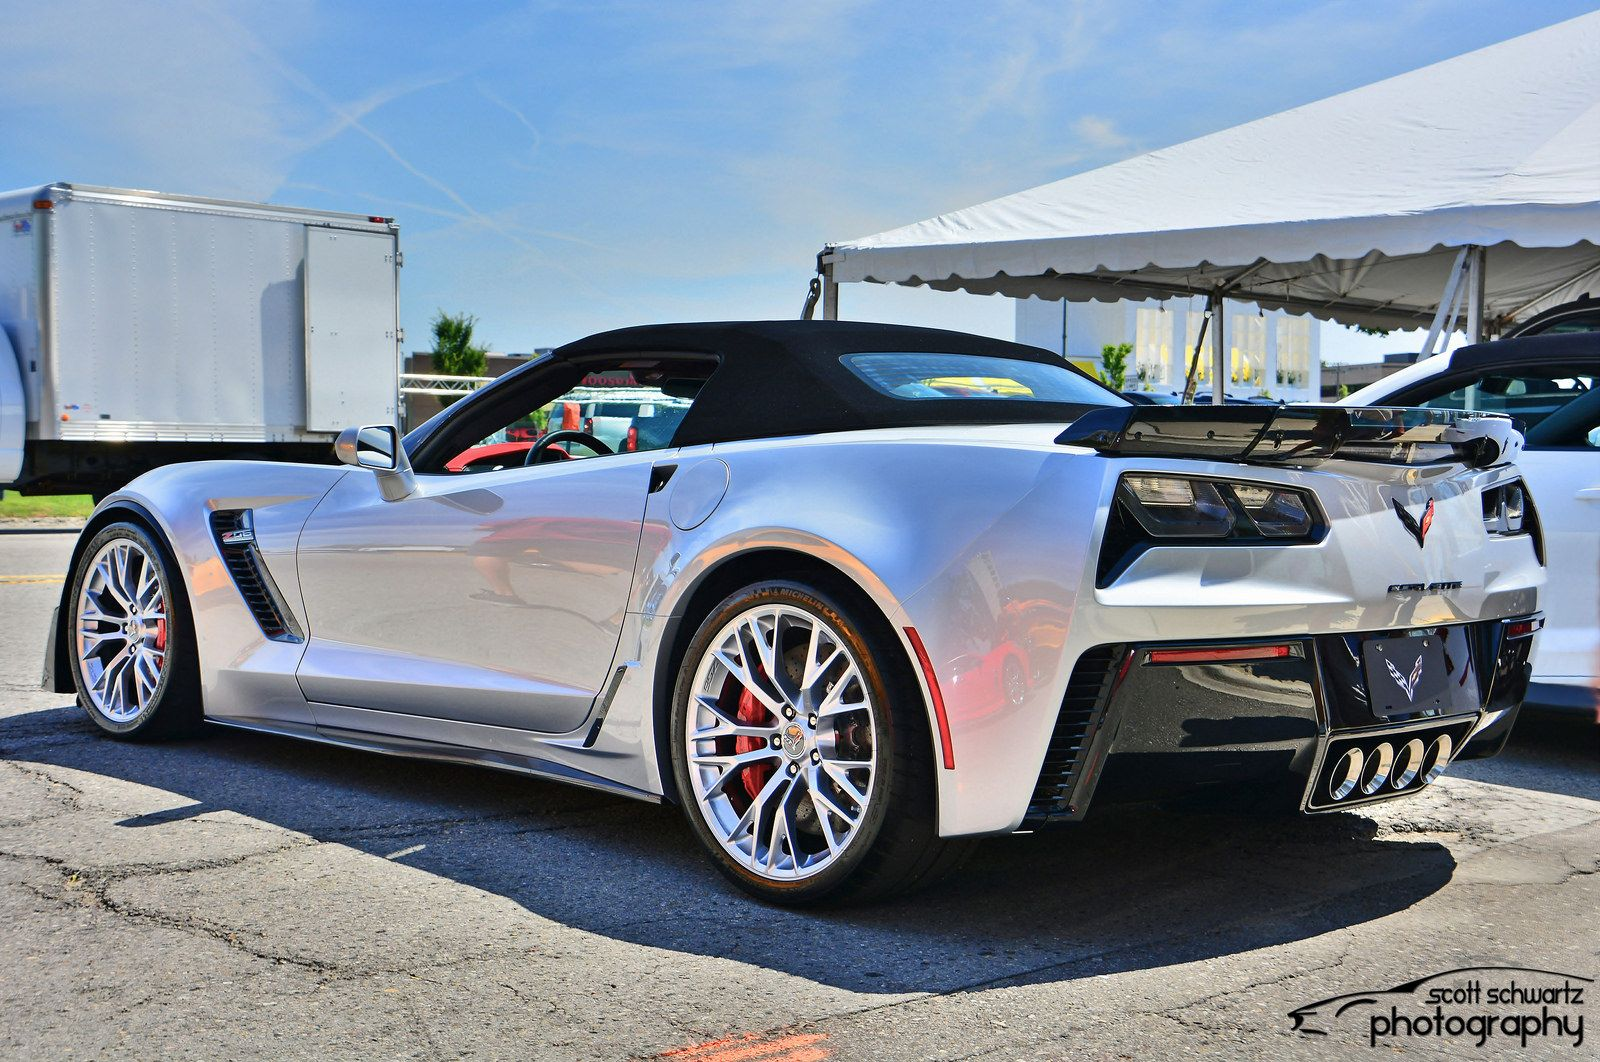 2015 c7 corvette z06 convertible corvette convertible and cars. Black Bedroom Furniture Sets. Home Design Ideas